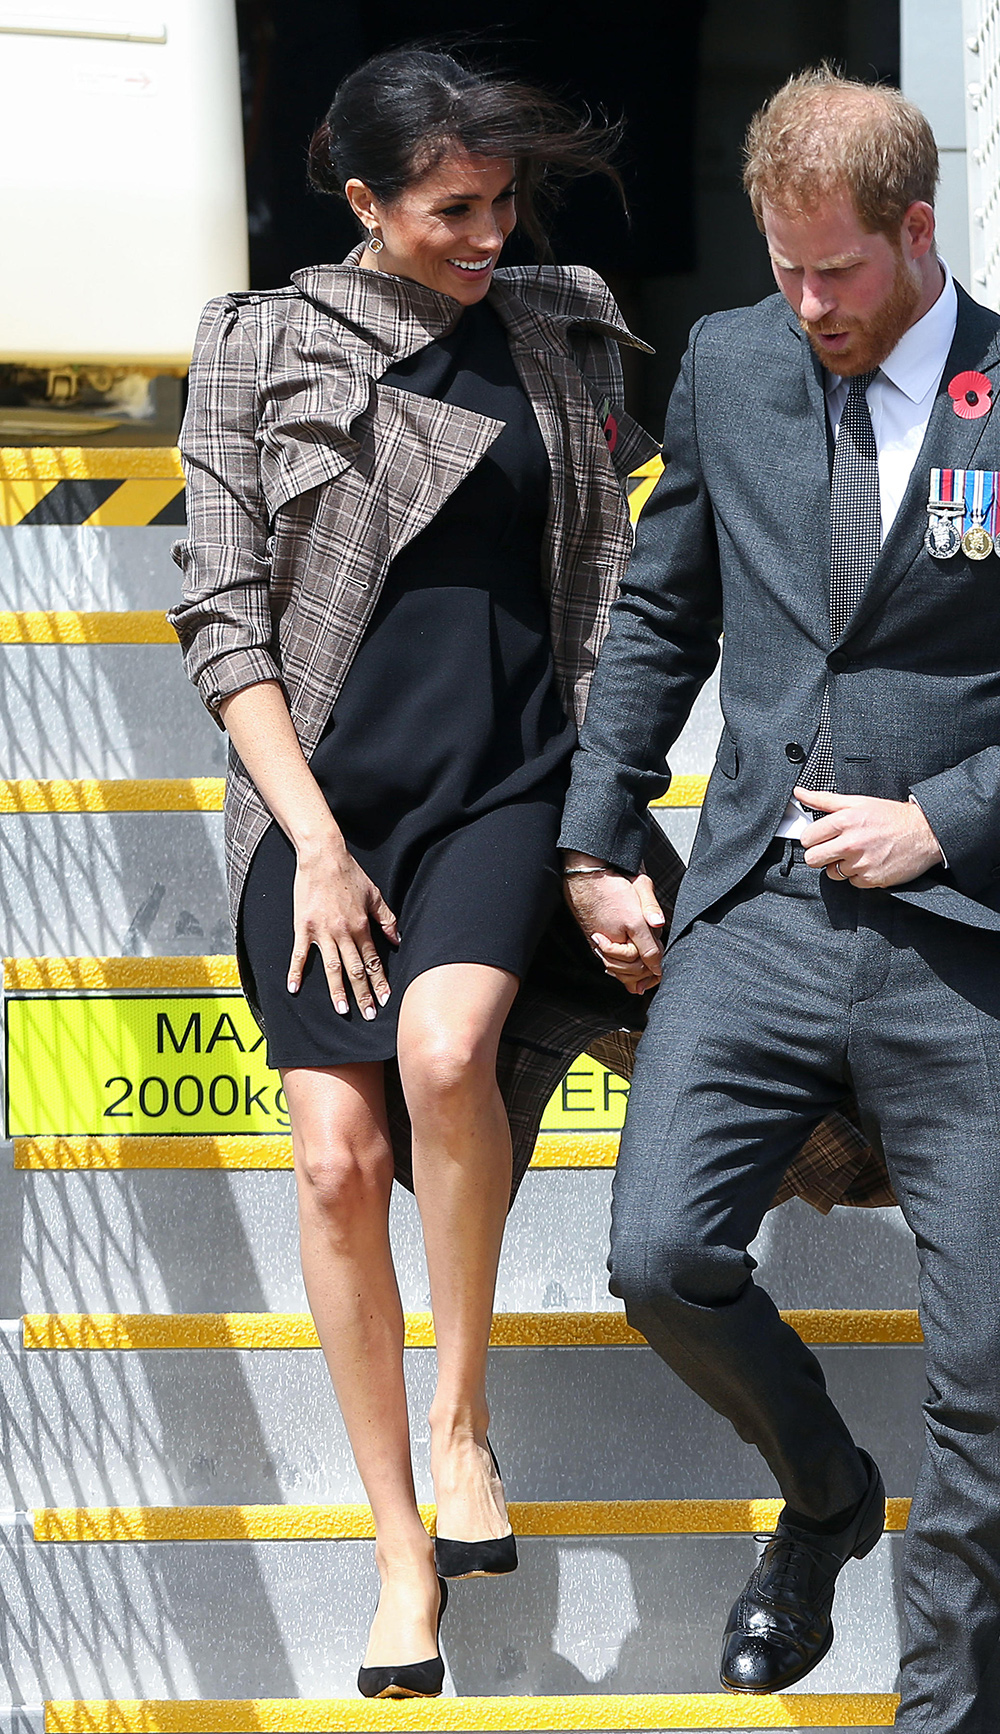 Meghan, Duchess of Sussex arrives at Wellington airport on October 28, 2018 in Wellington, New Zealand.